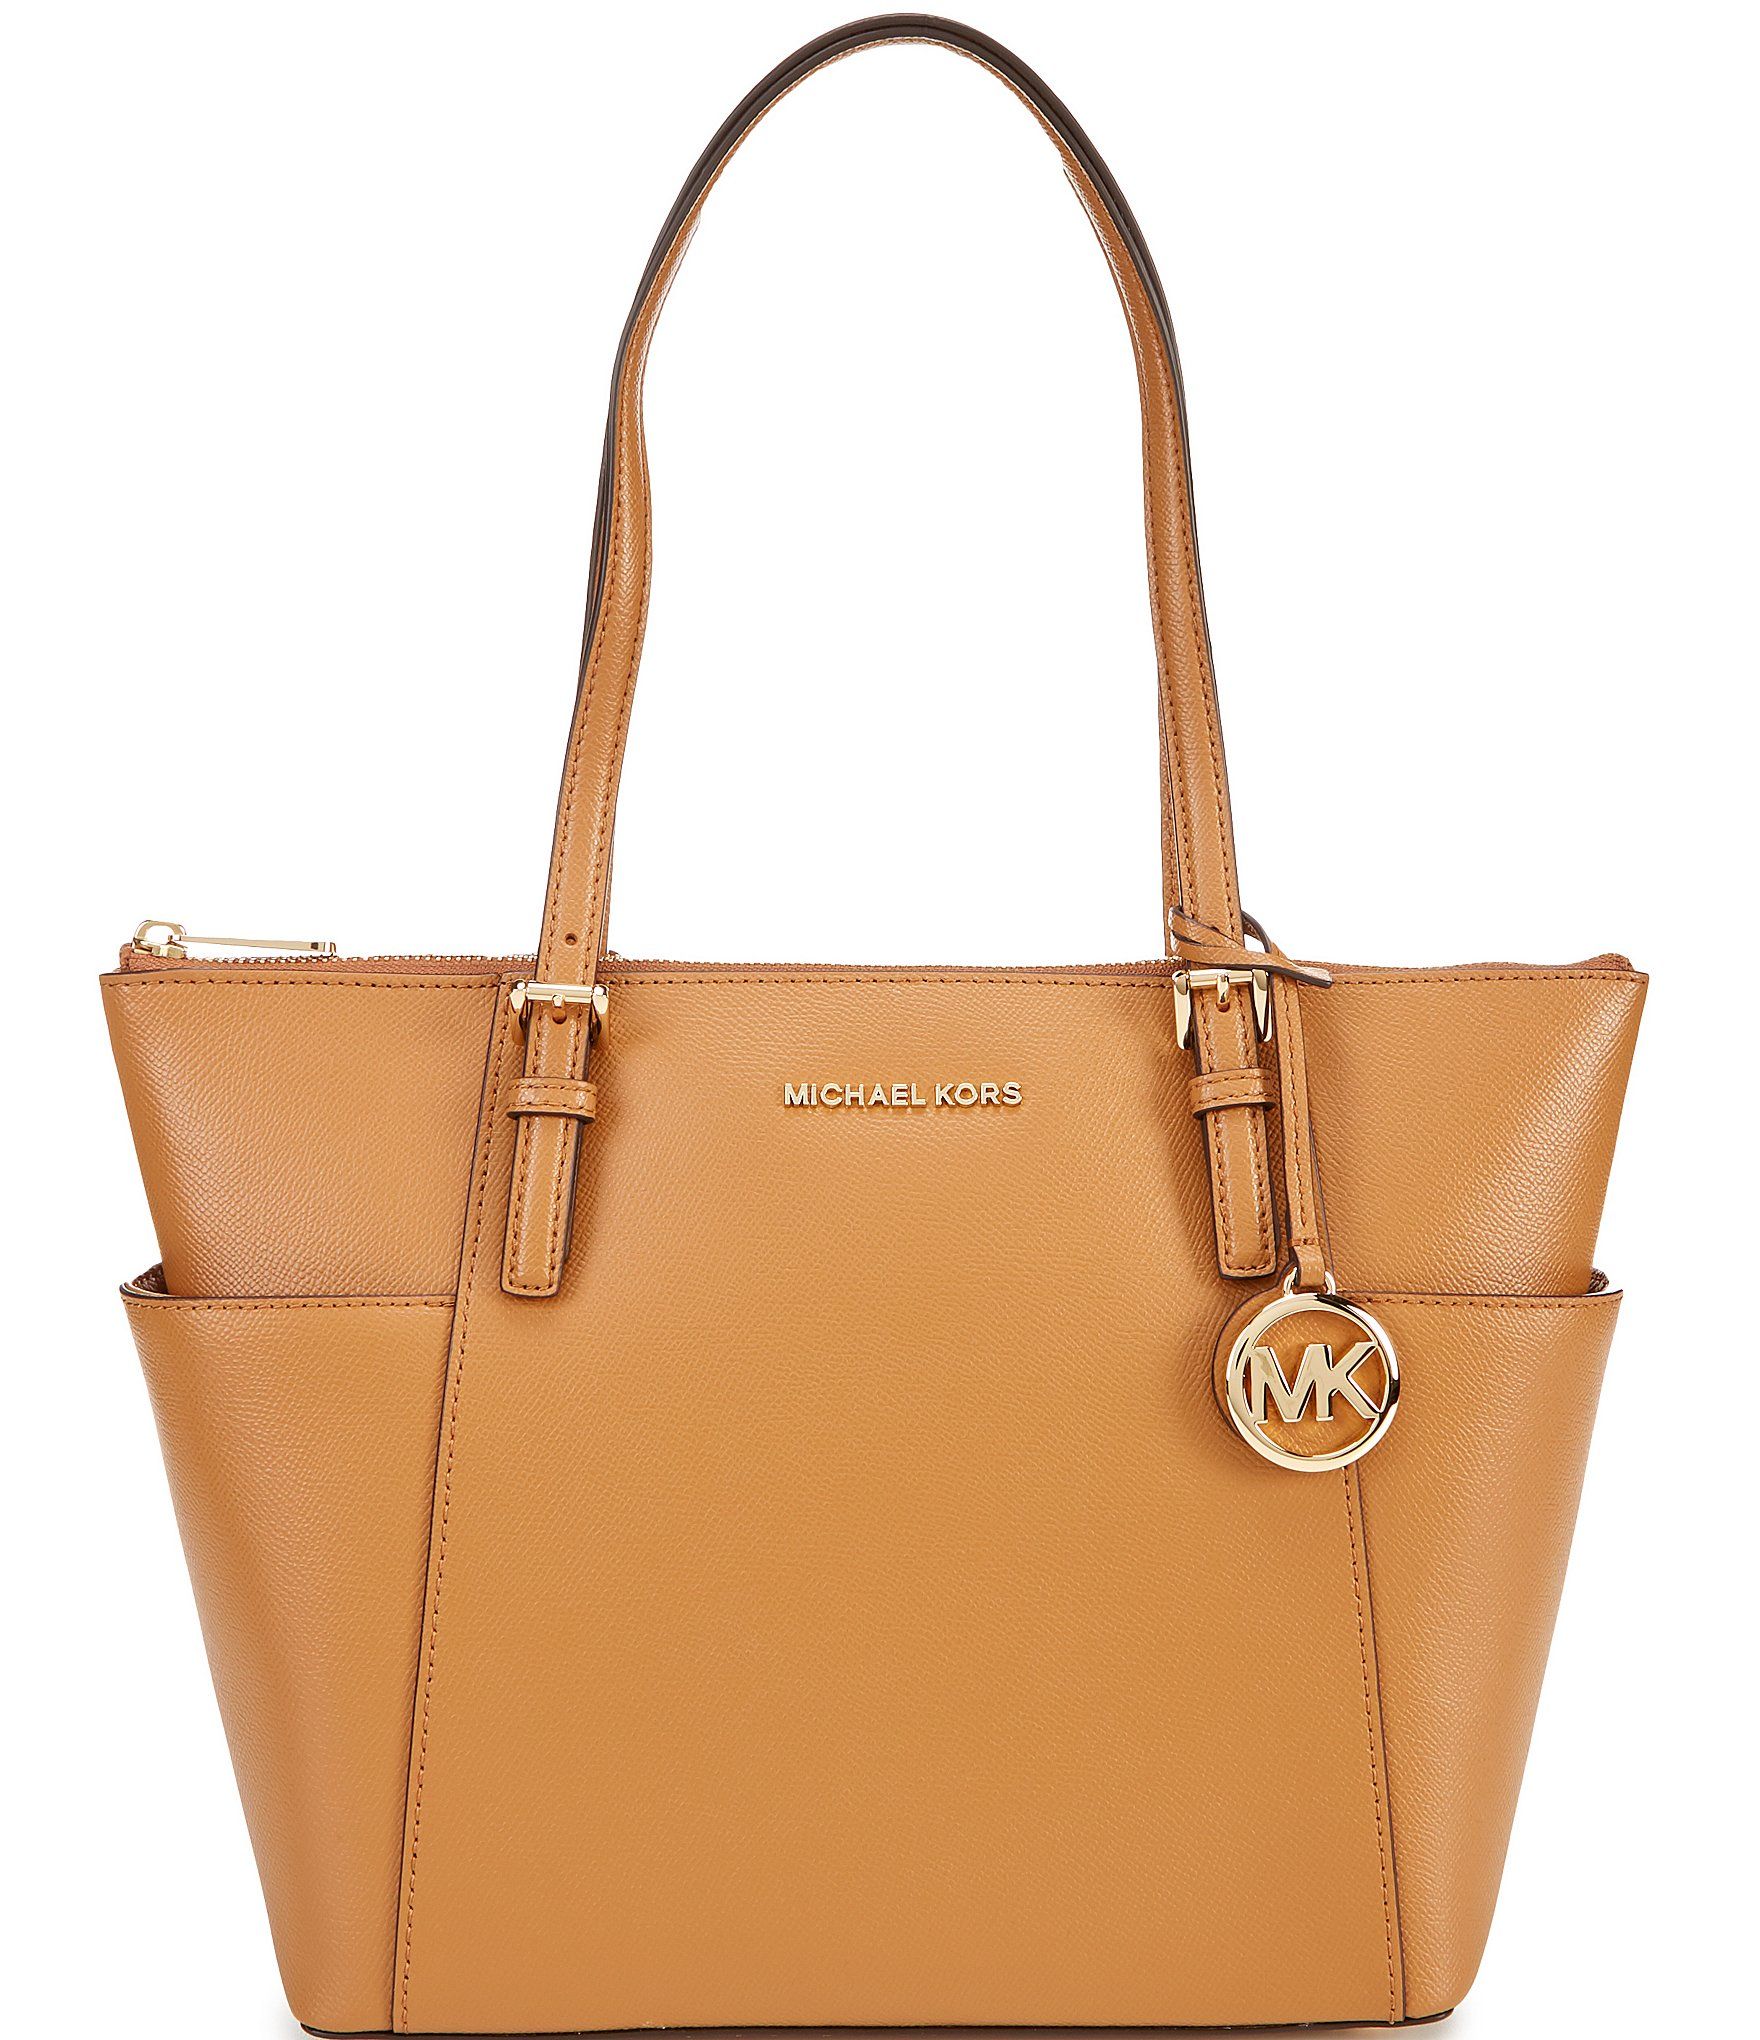 Get 65% OFF Michael Kors Outlet Canada here,% Satisfaction Guarantee, Top Quality Michael Kors Outlet Sale in our Online Store with Cheap Price!